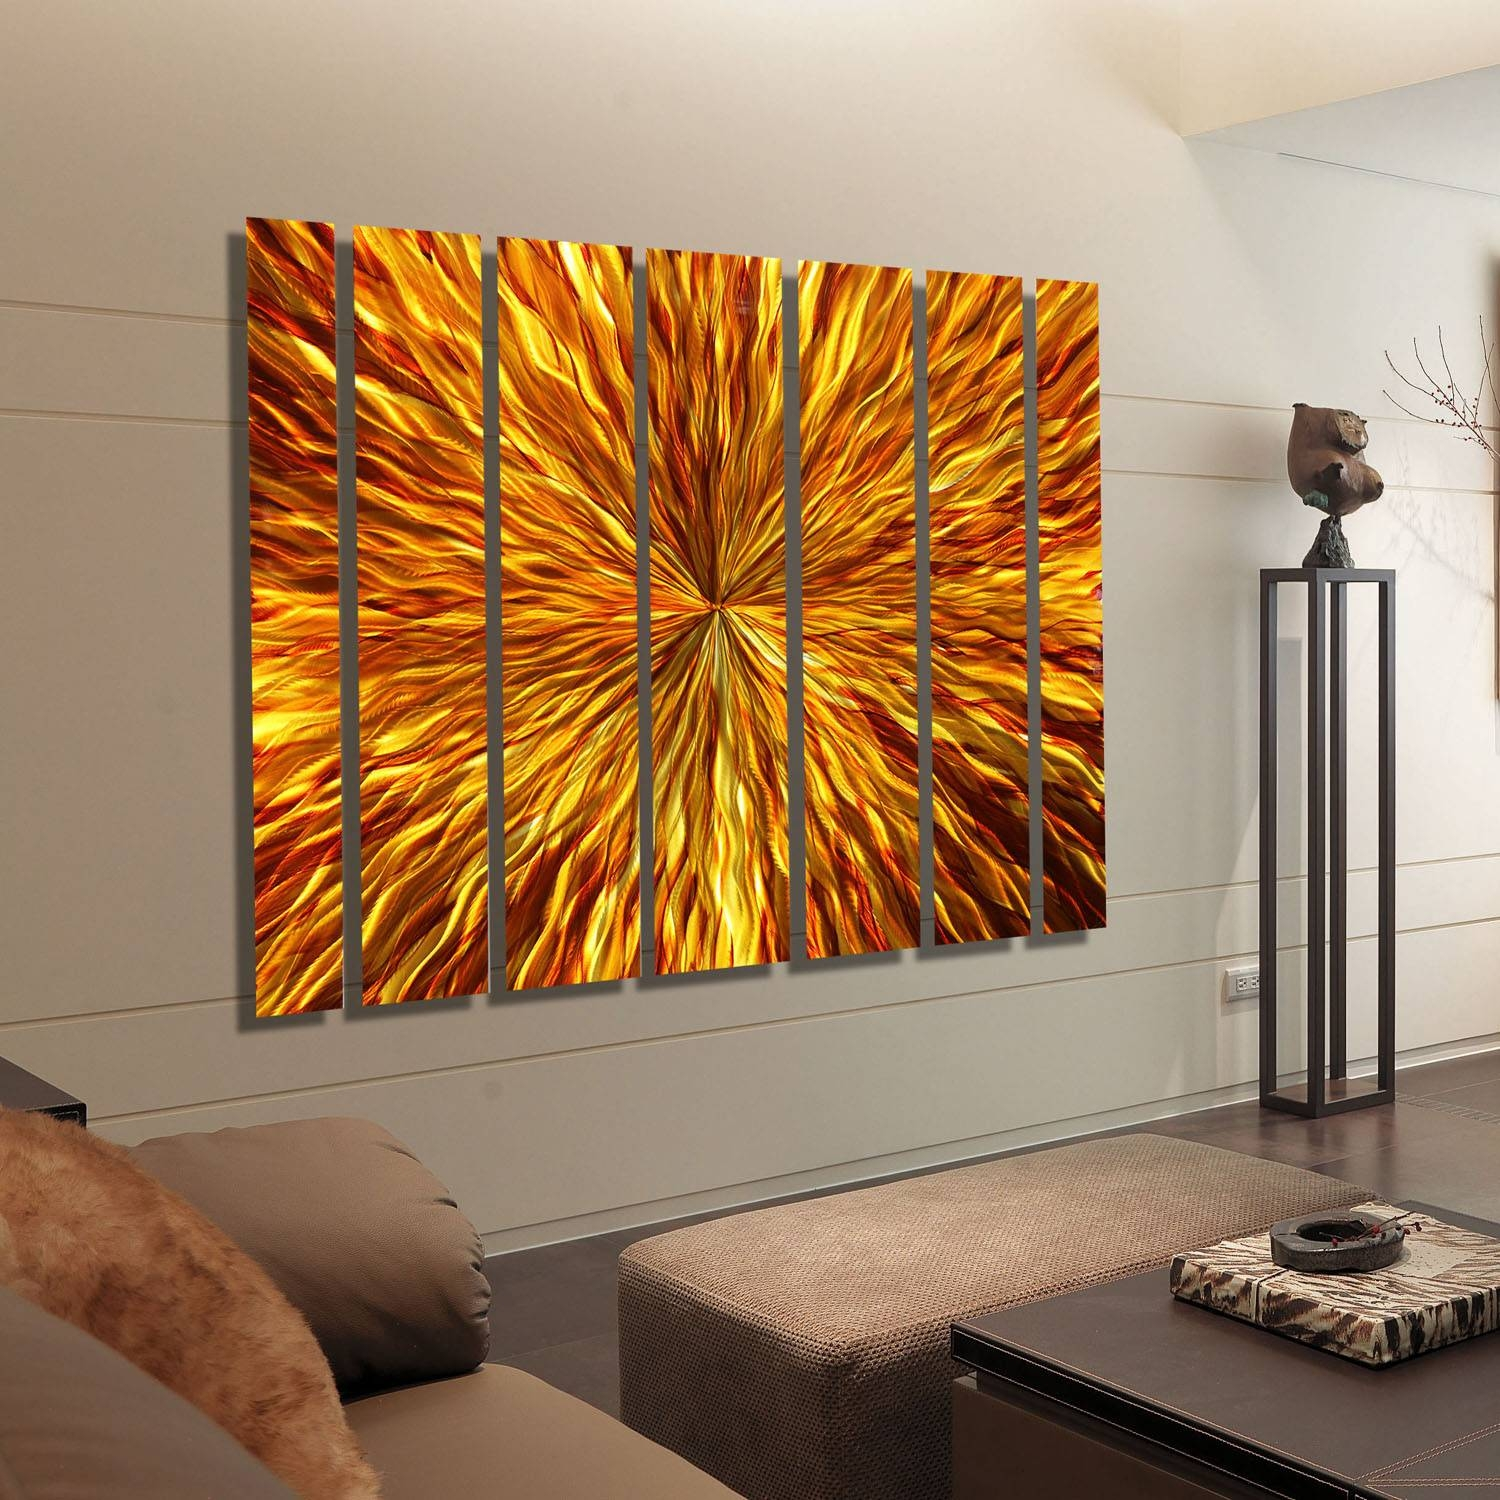 Amber Vortex Xl – Extra Large Modern Metal Wall Artjon Allen In Current Extra Large Metal Wall Art (View 2 of 20)